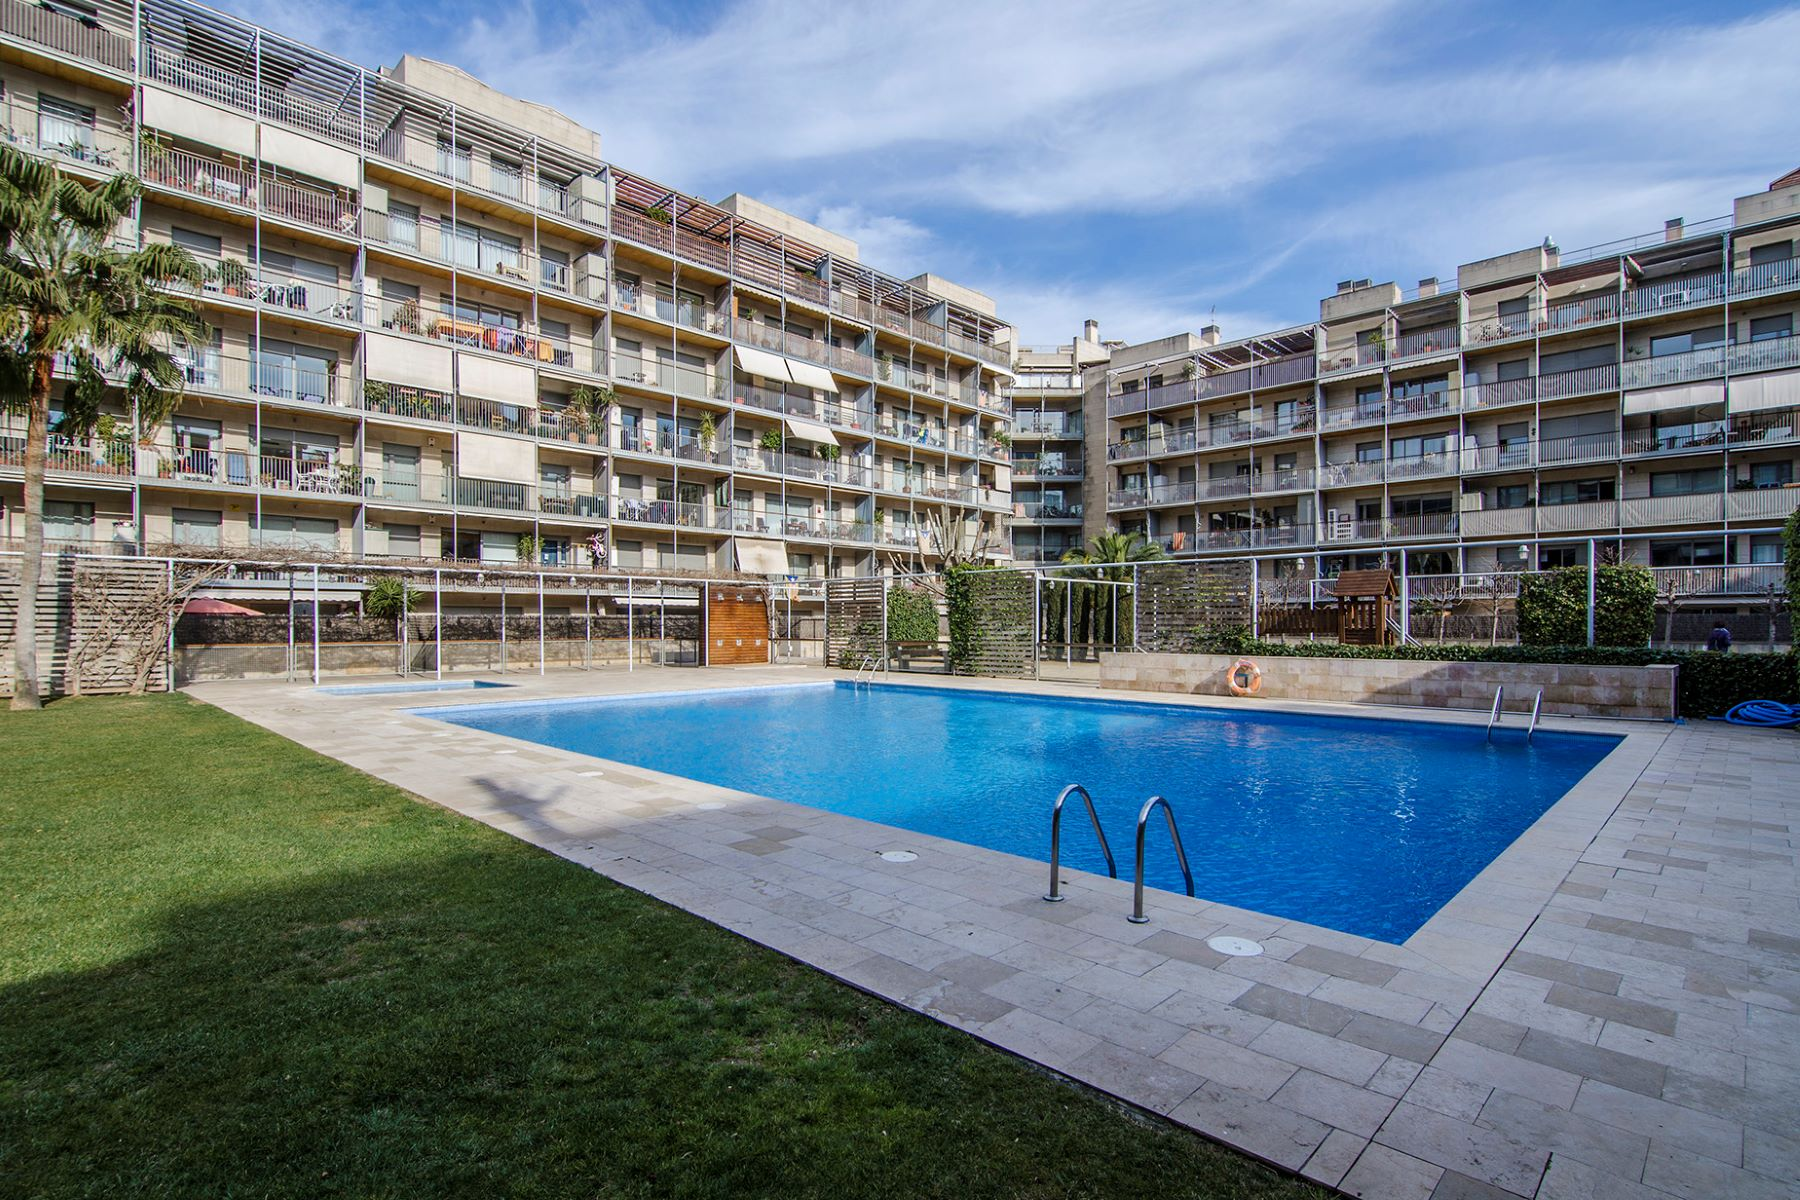 Căn hộ vì Bán tại Apartment for sale just few steps from the beach in Poblenou, Barcelona Barcelona City, Barcelona, 08019 Tây Ban Nha